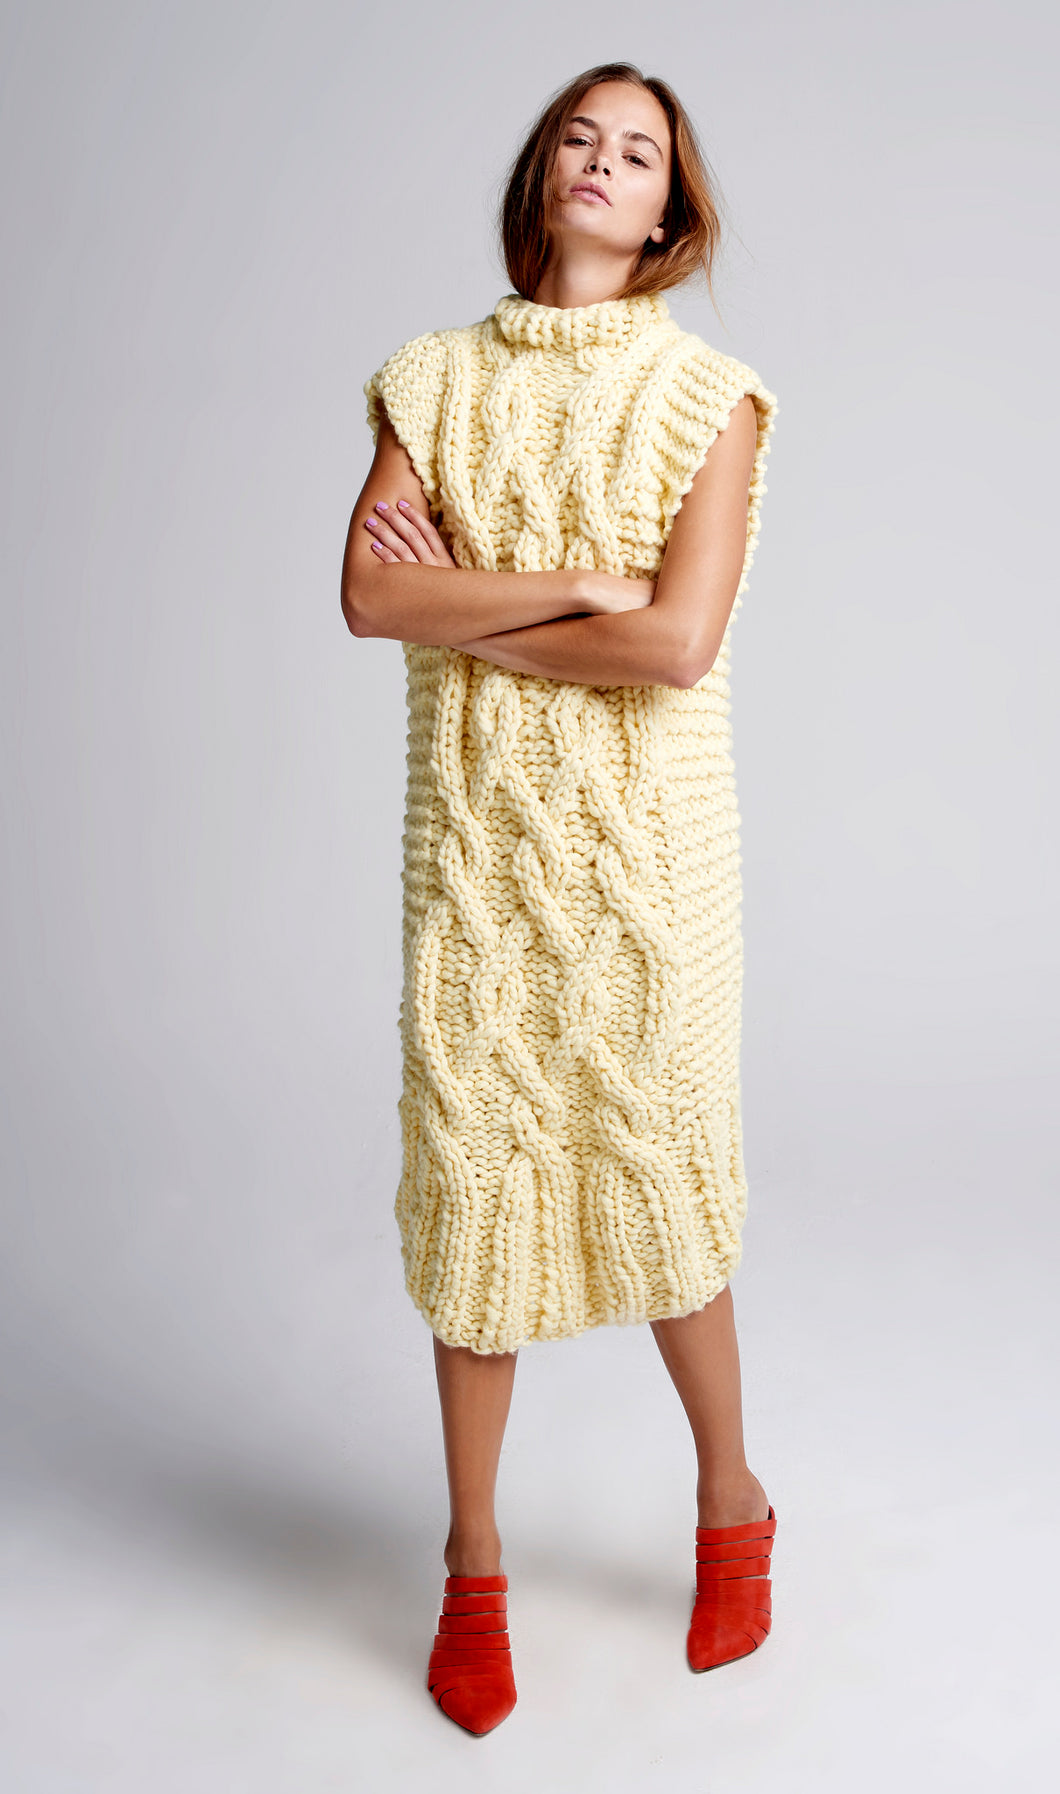 READYMADE-Long Cable Dress - Merino-SALE